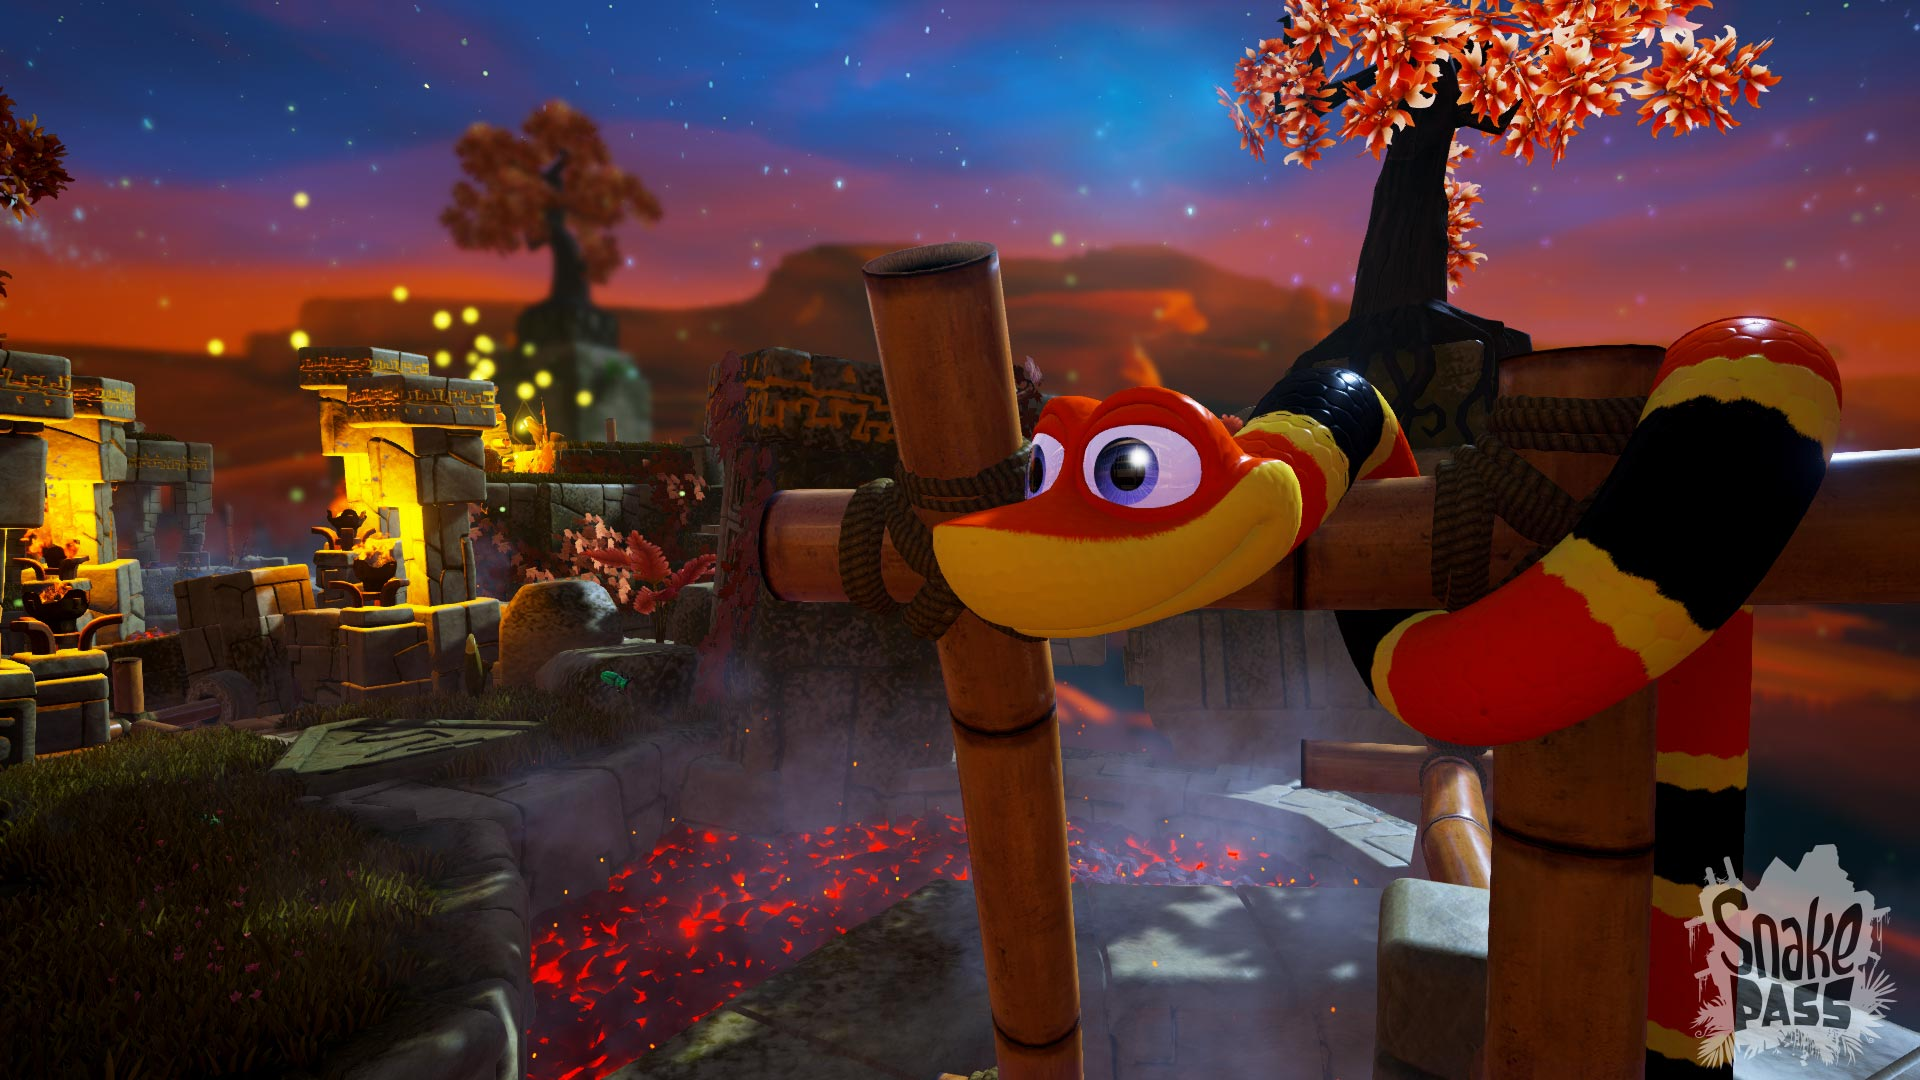 Snake Pass annunciato per PC, PlayStation 4, Xbox One e Switch